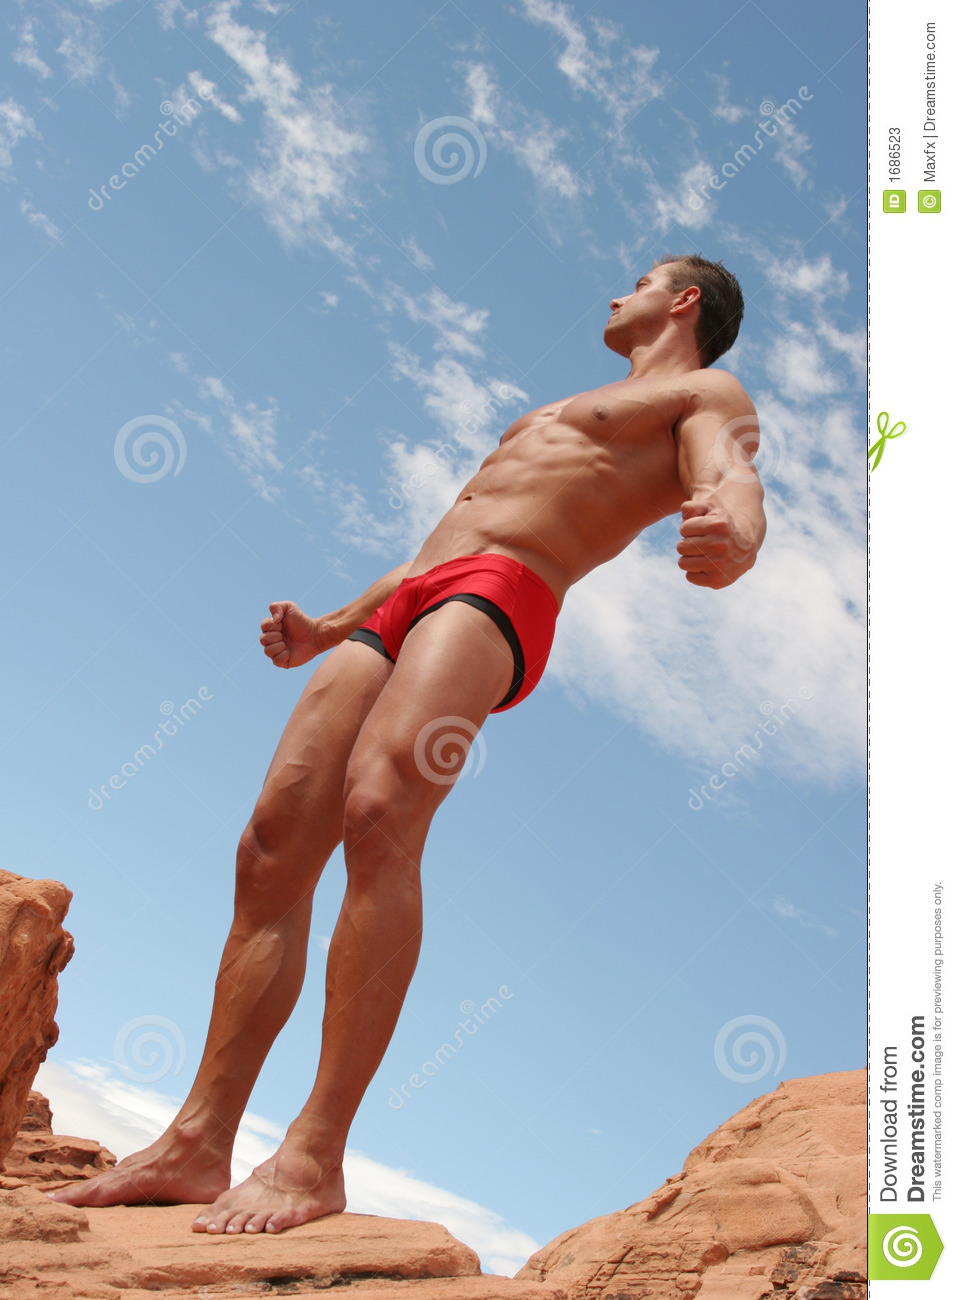 Athletic, muscular man in red briefs.